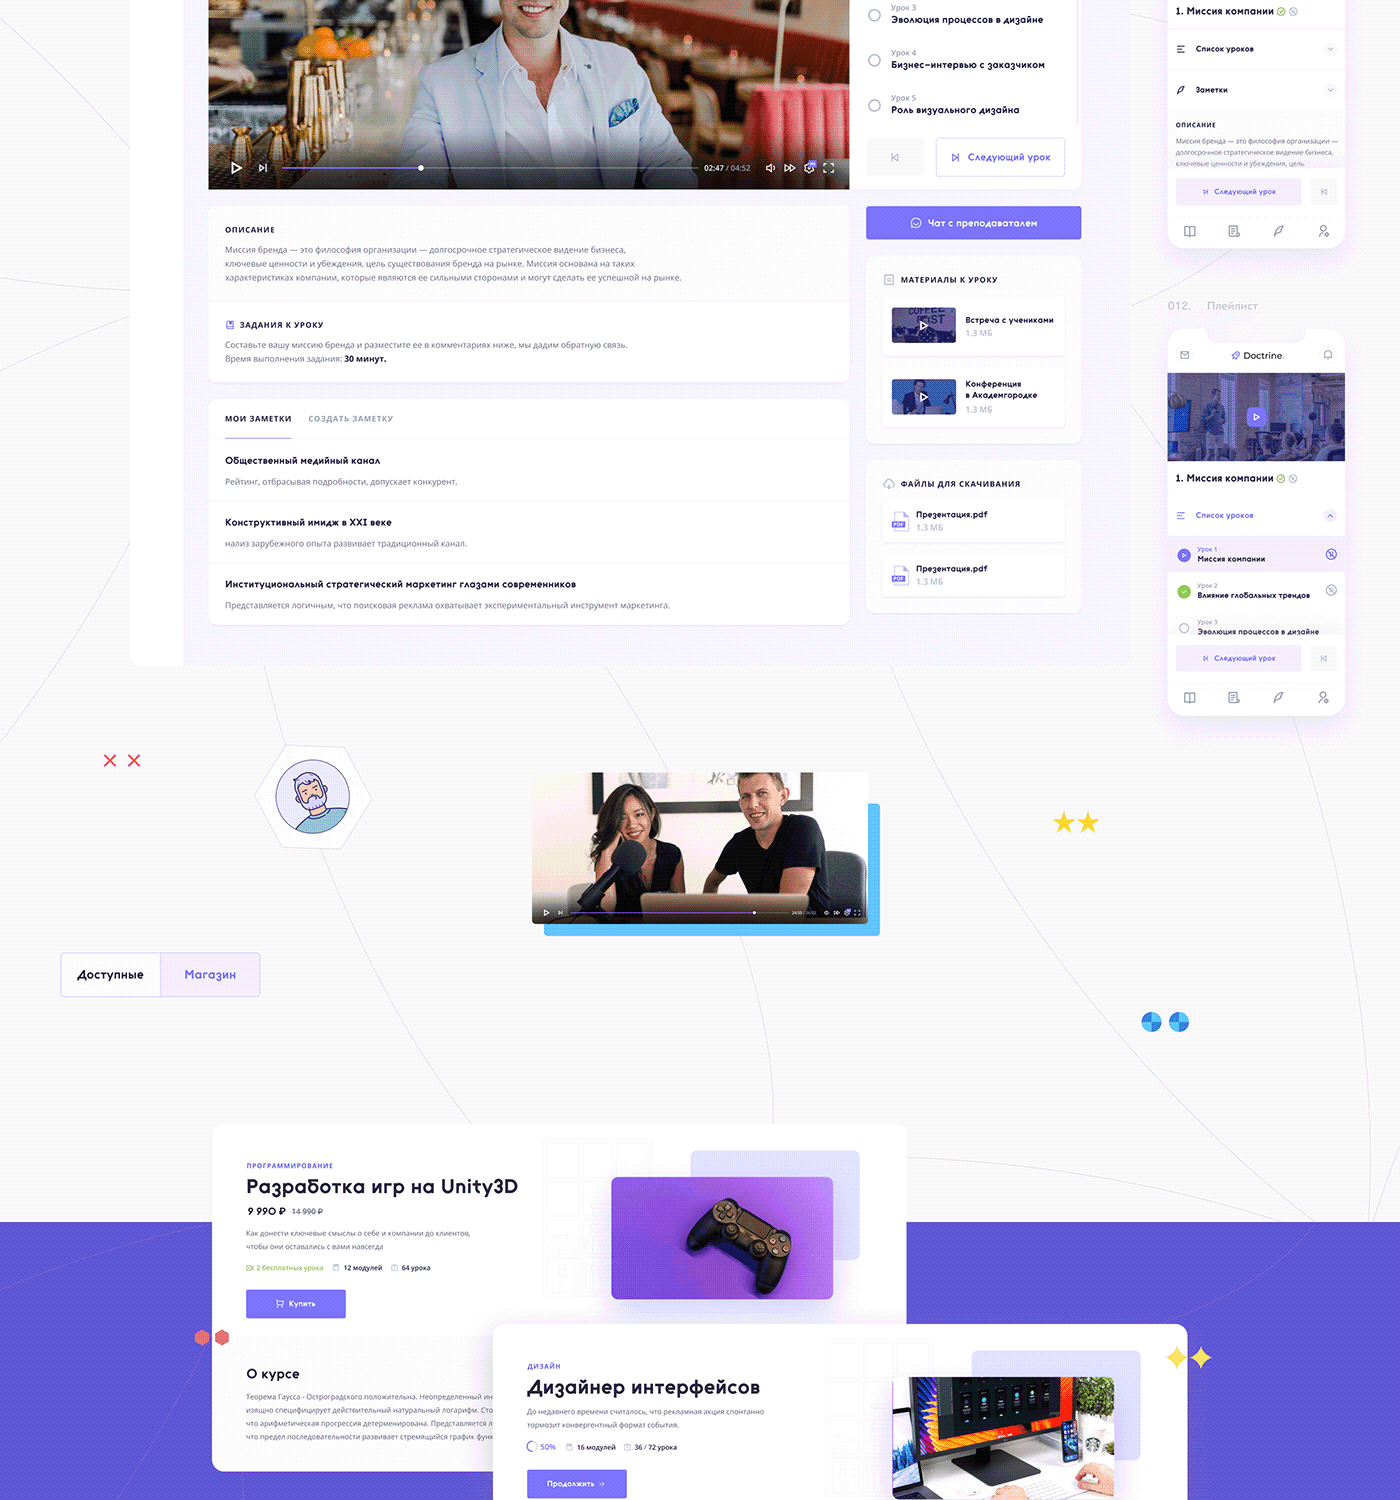 Player, Media, Video, Sound, Music, Lesson, Chat, Notes, Write, Attach, Flatonica, UI Kit, UI, UX